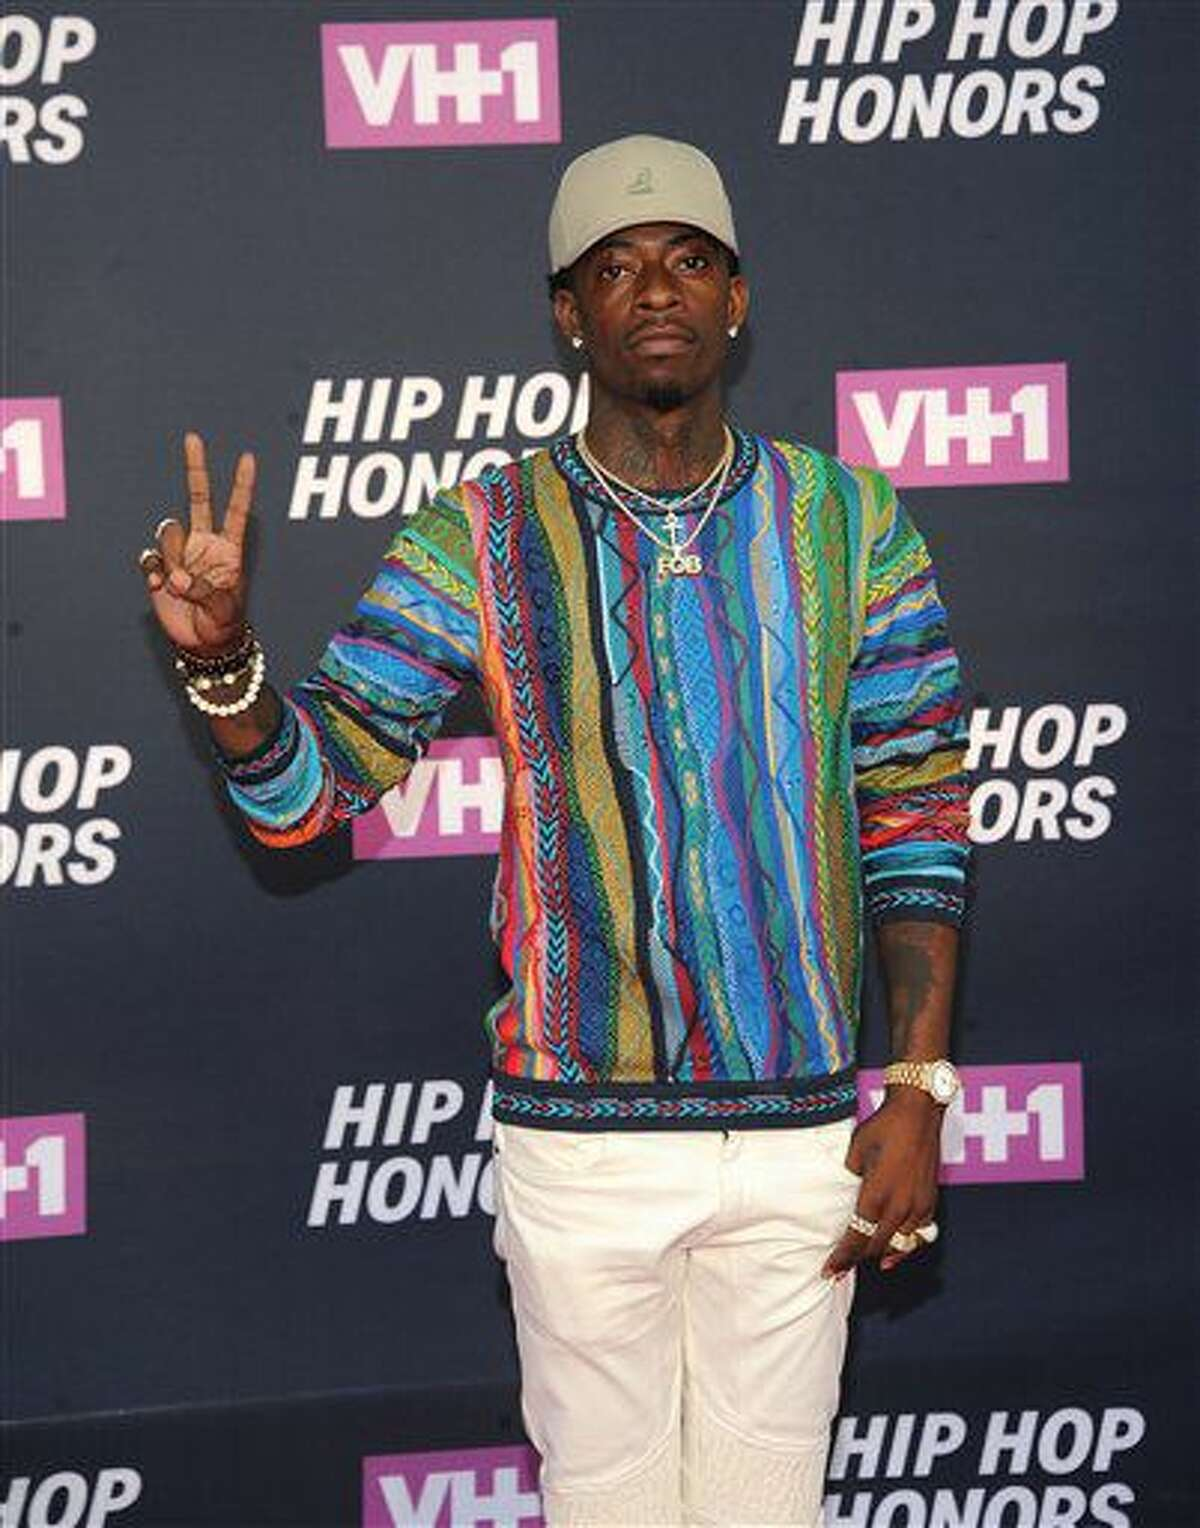 Rich Homie Quan attends the arrivals at VH1's Hip Hop Honors at David Geffen Hall at Lincoln Center on Monday, July 11, 2016, in New York. (Photo by Brad Barket/Invision/AP)